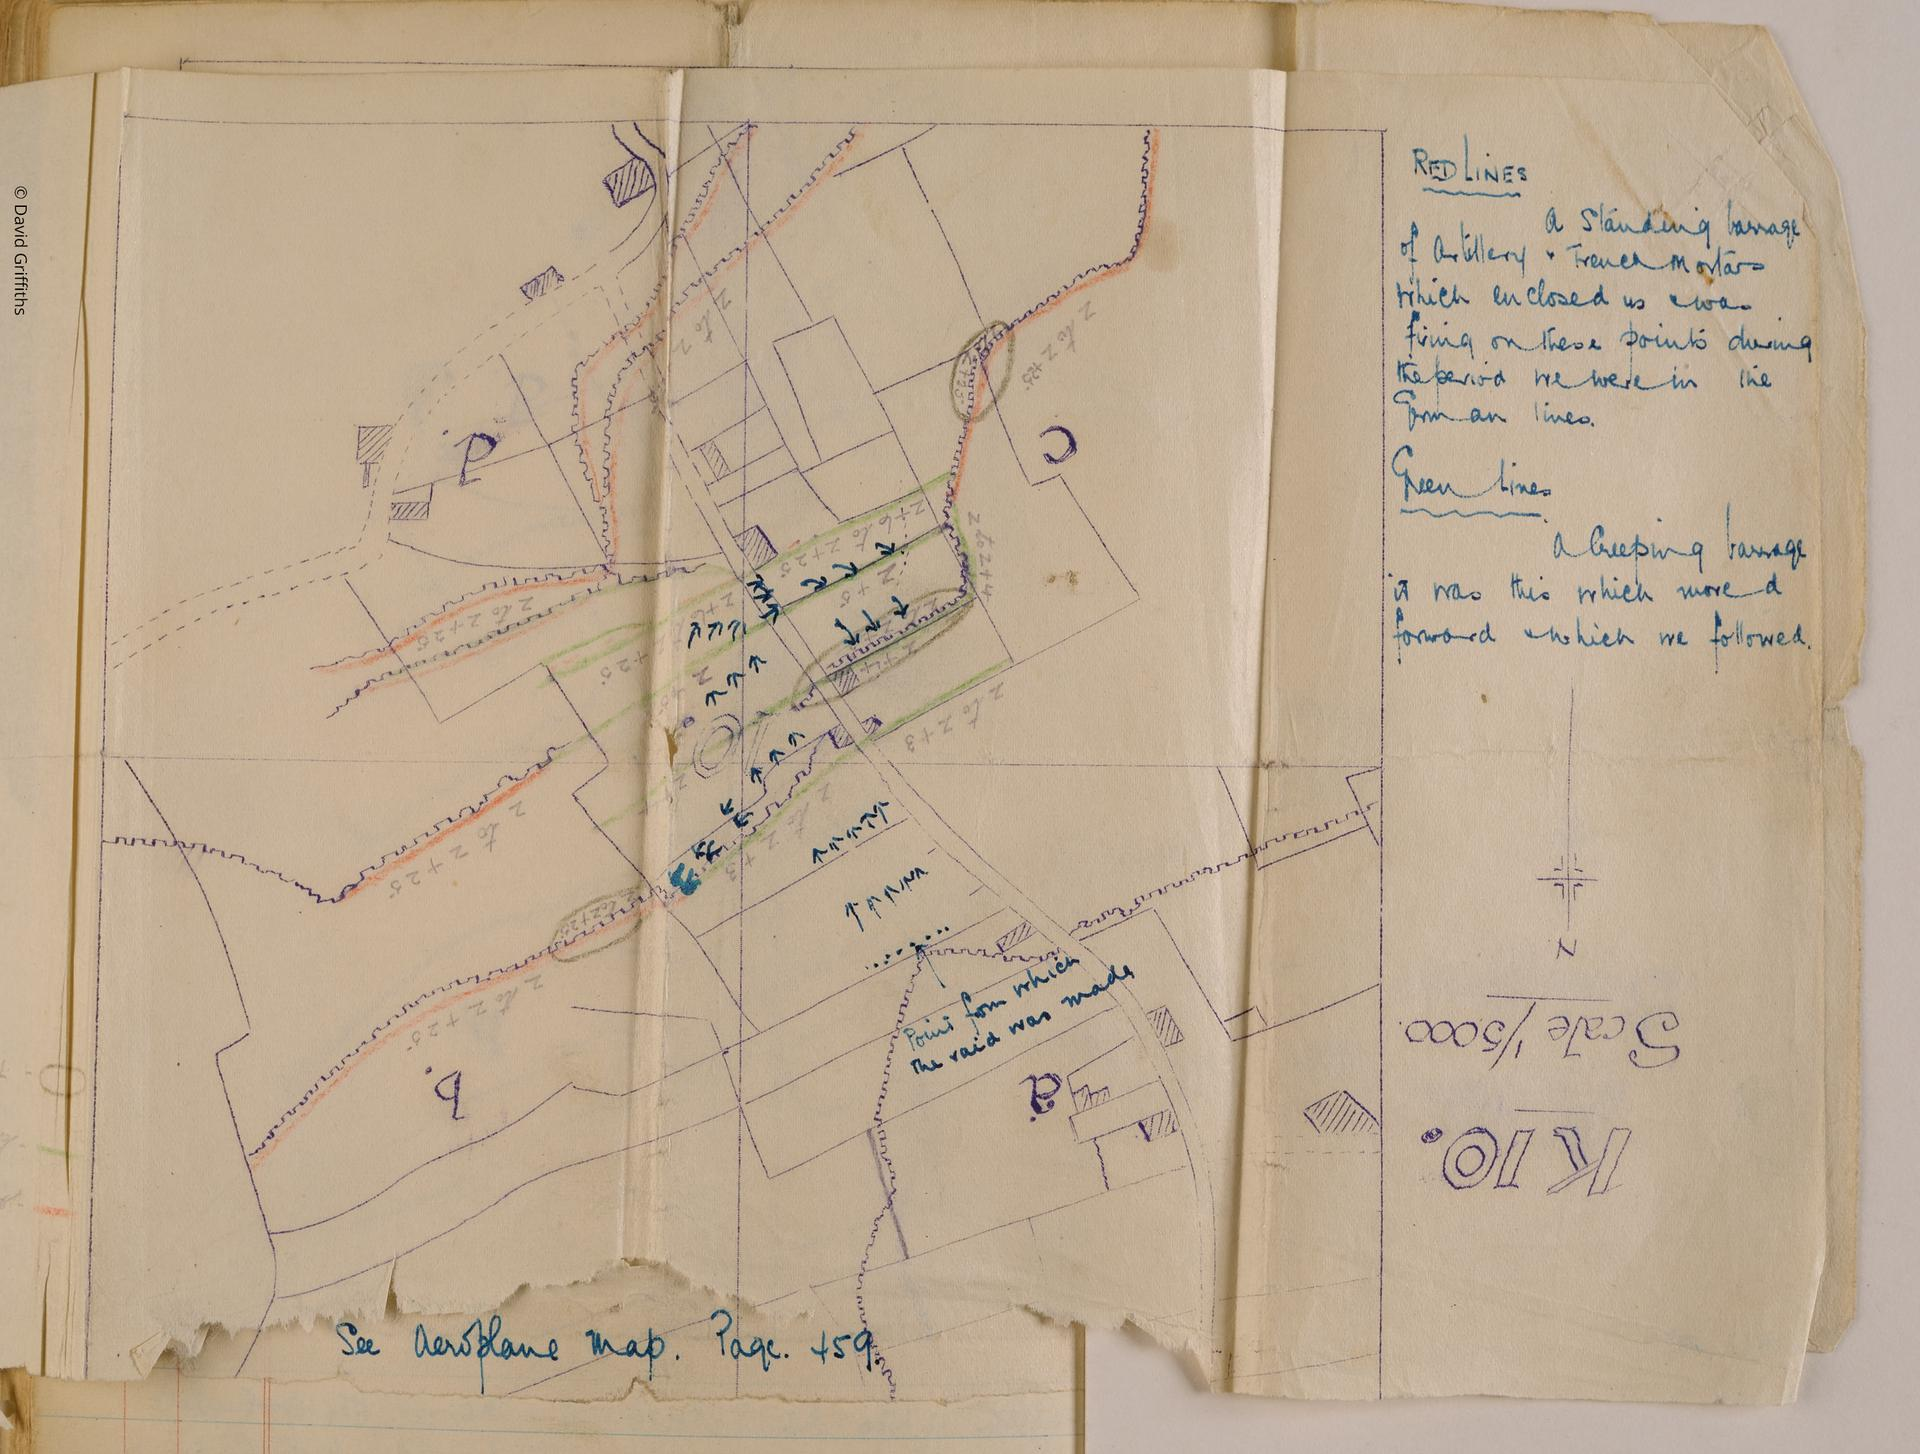 First World War trench raid map belonging to Harry Drinkwater, Western Front, 1914-1918